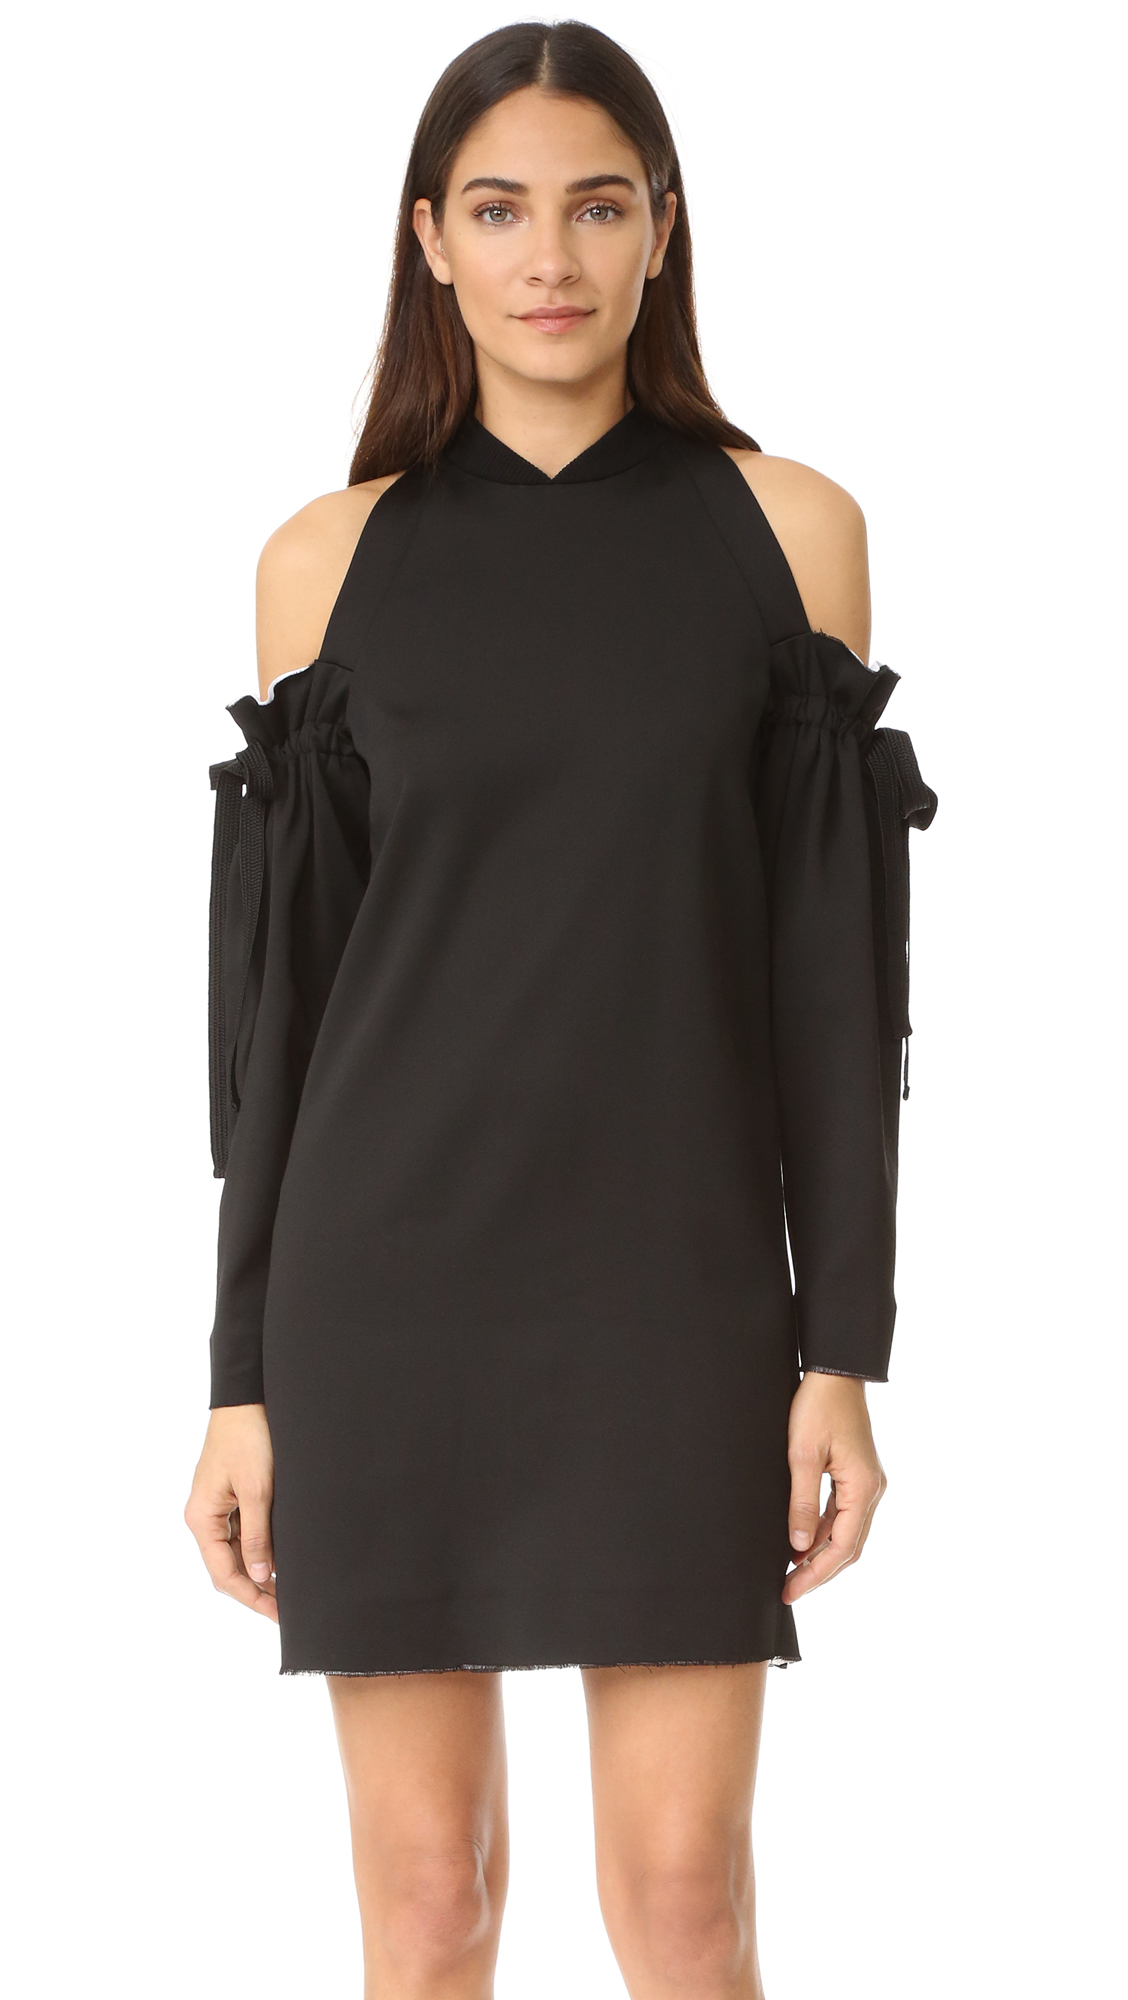 Dkny Cold Shoulder Dress With Raw Edges - Black/White at Shopbop